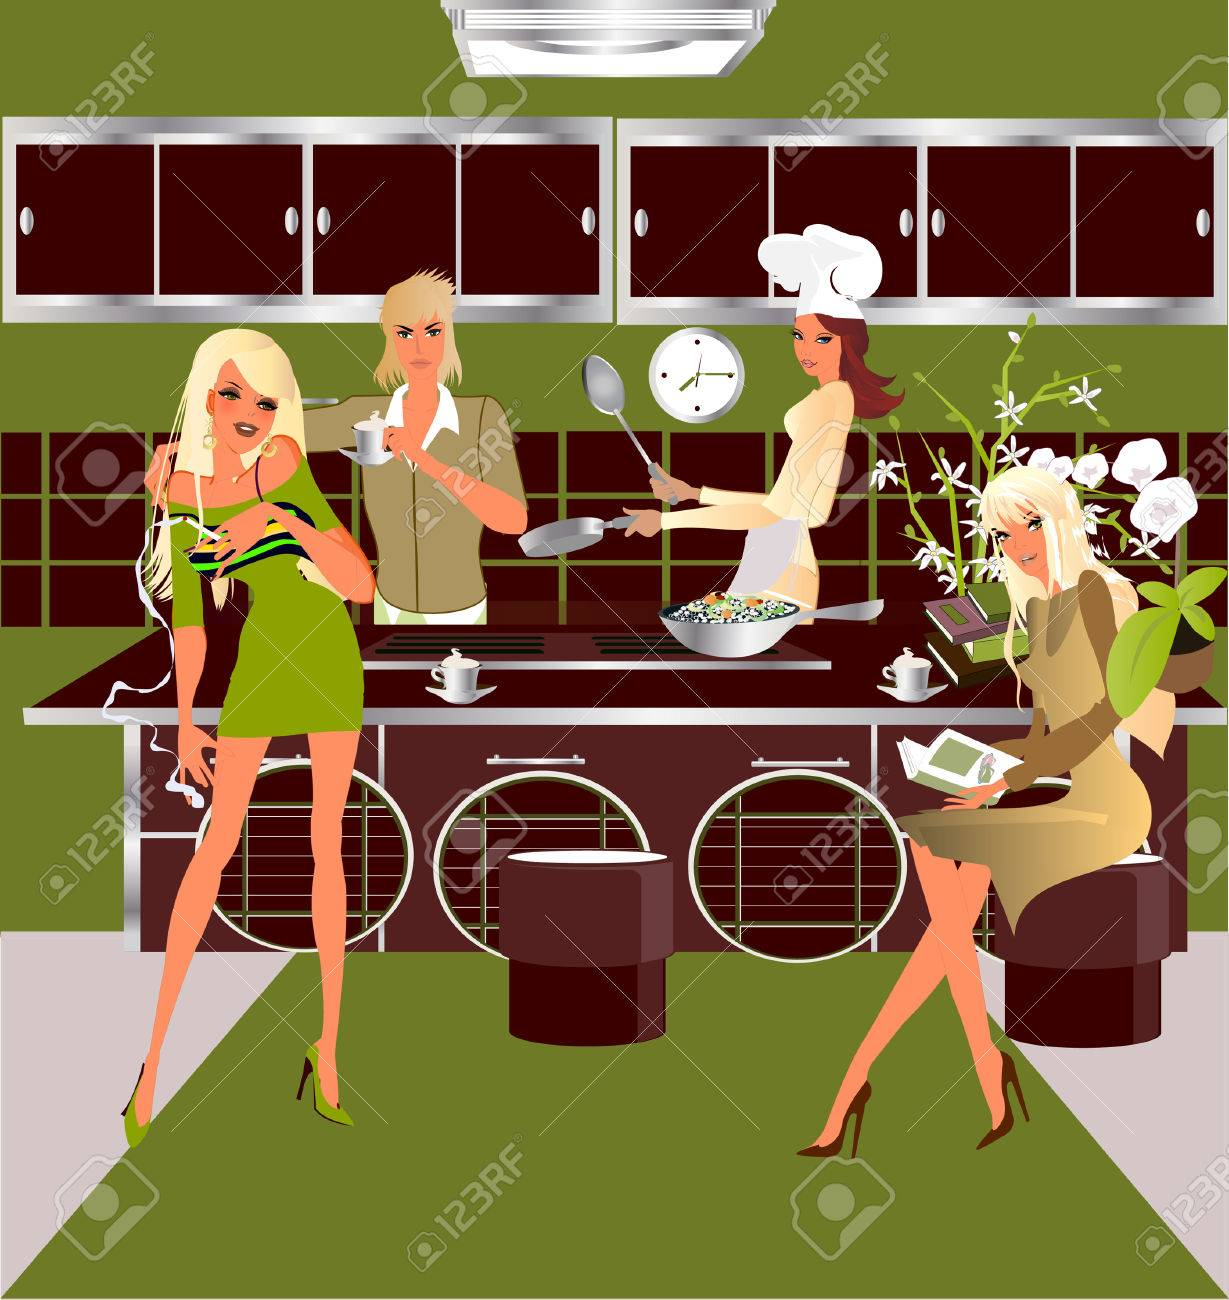 Kitchen Party Kitchen Party Royalty Free Cliparts Vectors And Stock